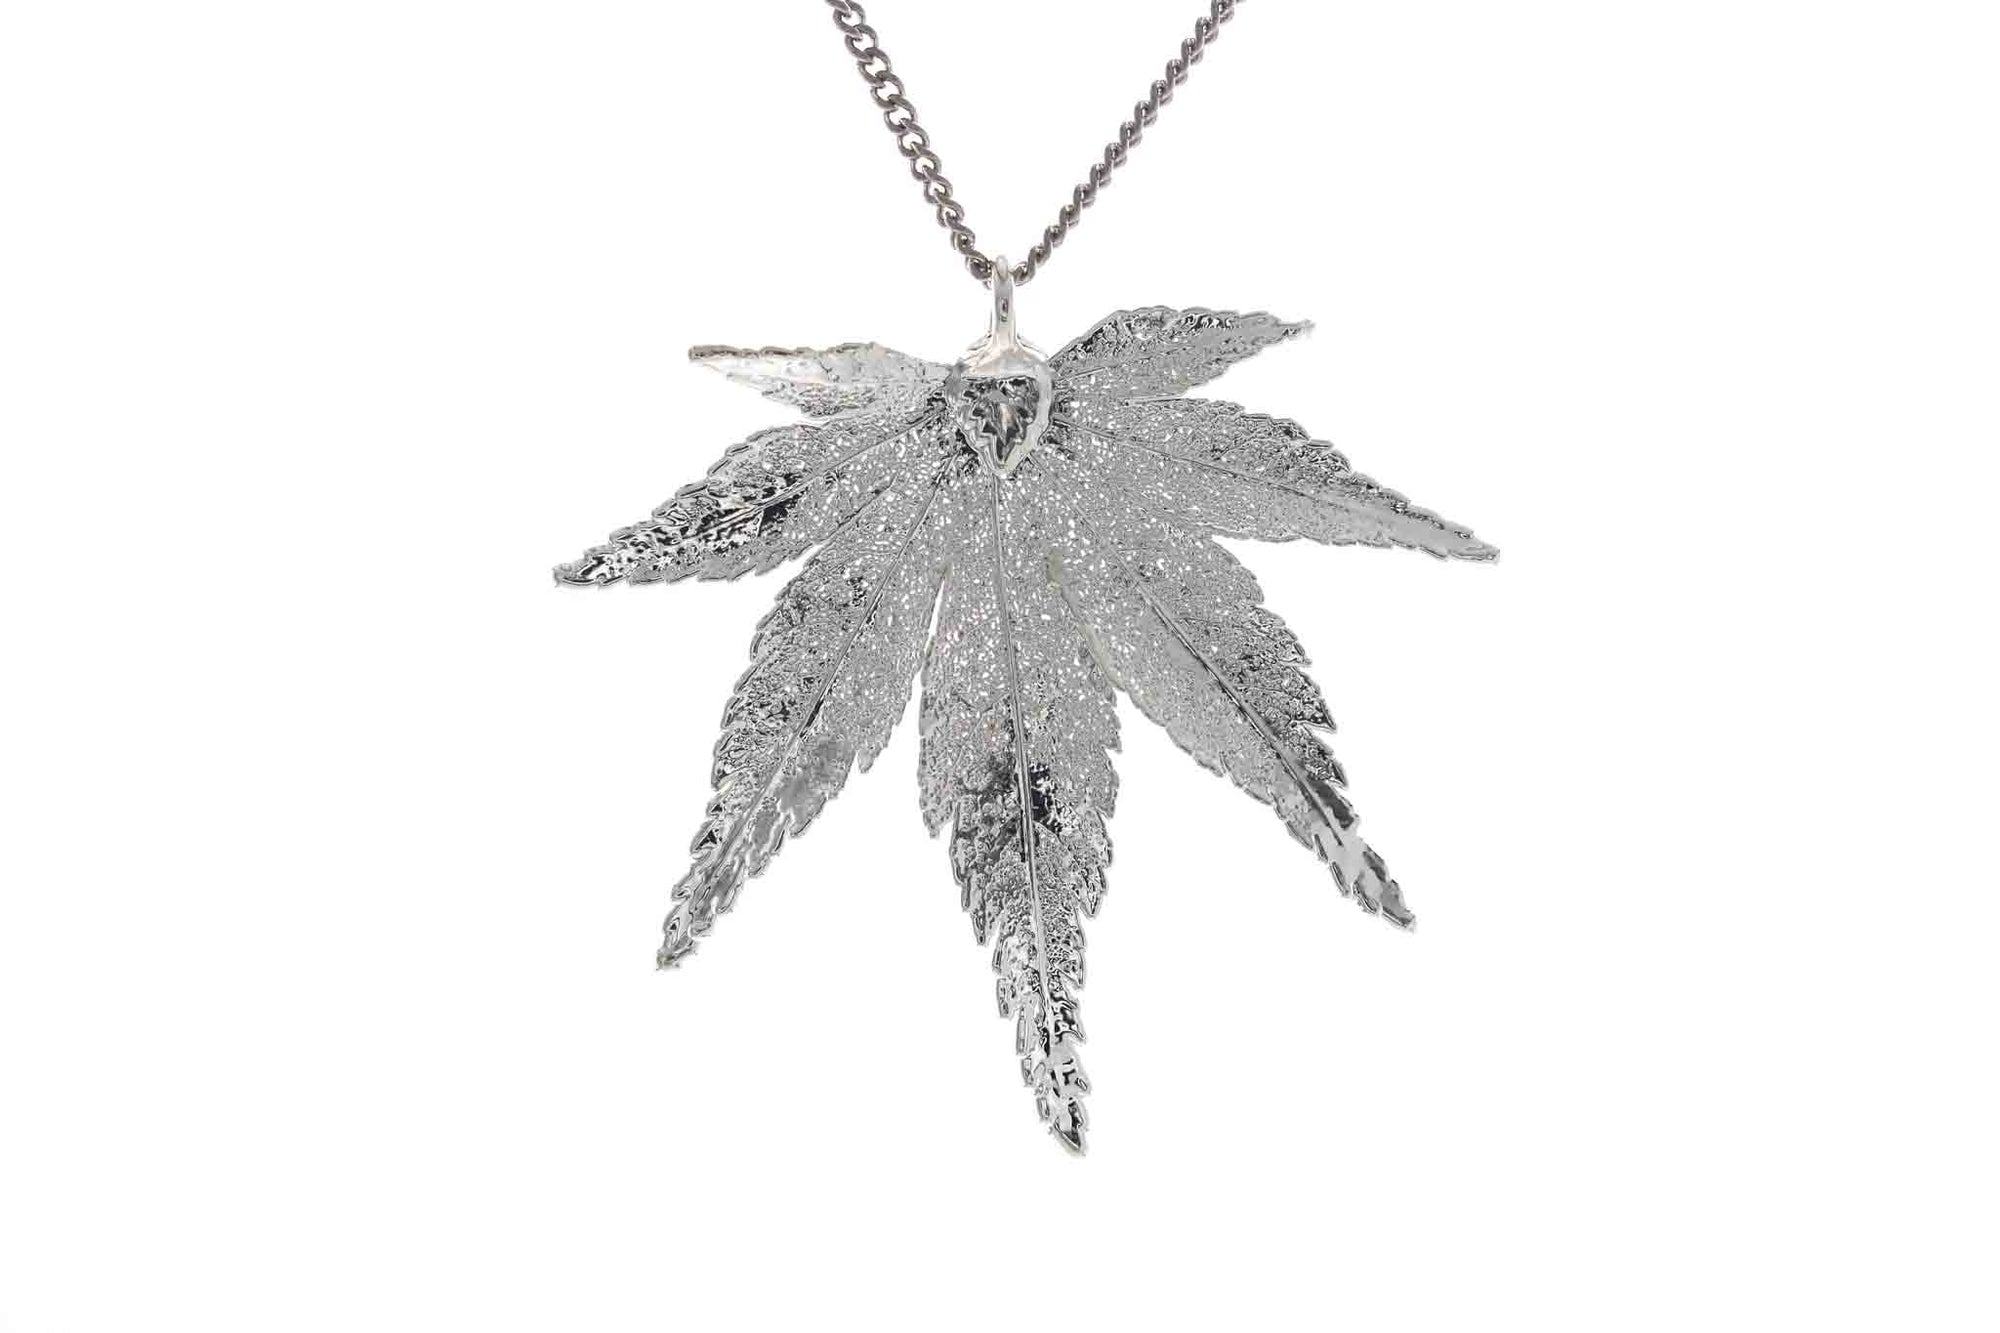 Real Japanese Maple Leaf Necklace In Silver